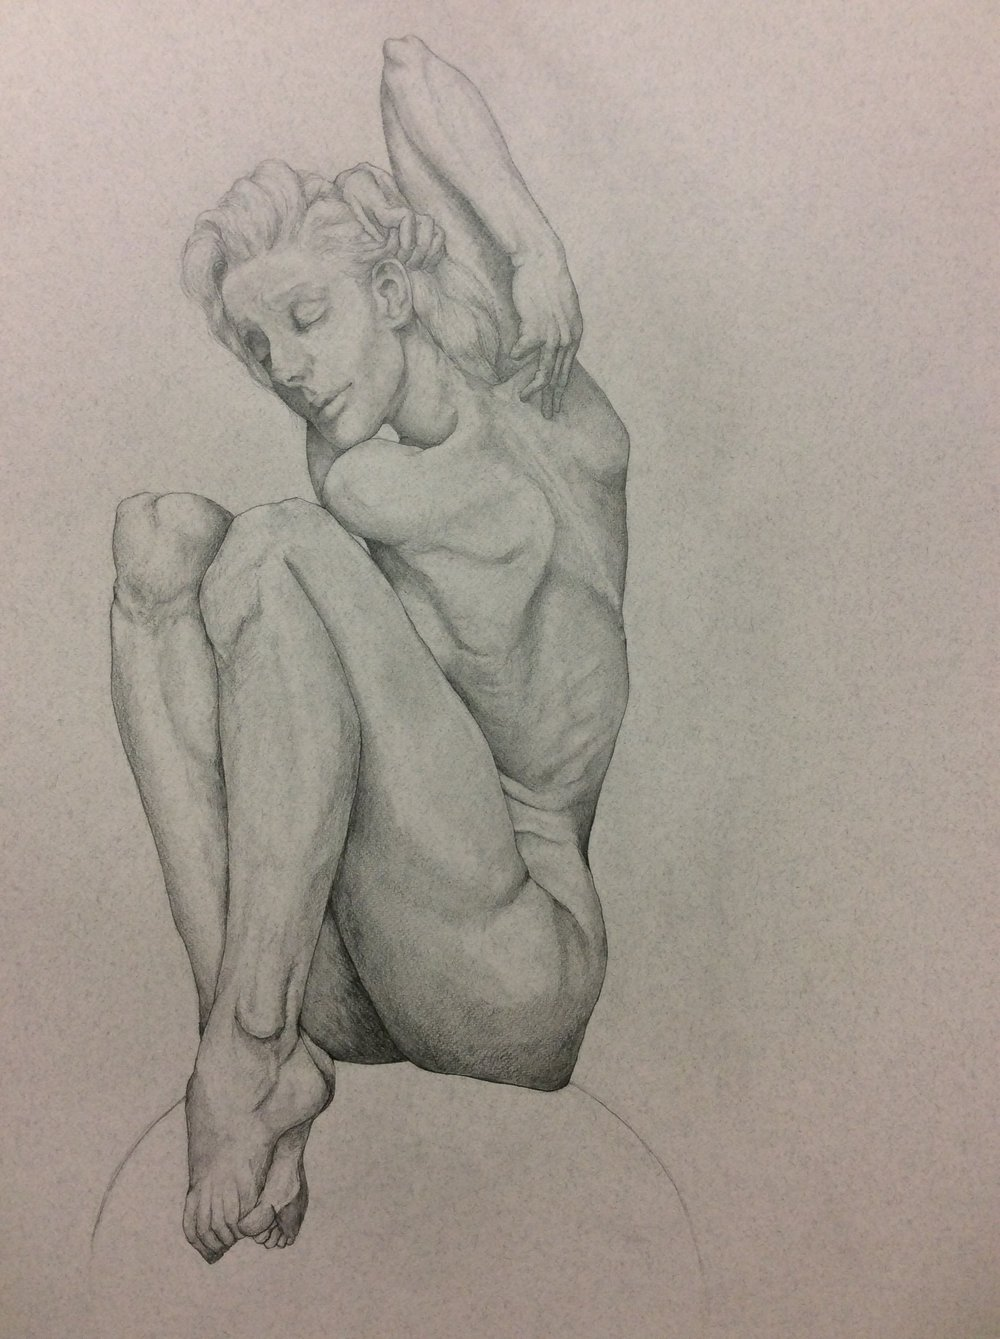 "6hr Figure Drawing of Female Angel Balance, Pencil on Paper, 50x65"", 2016"